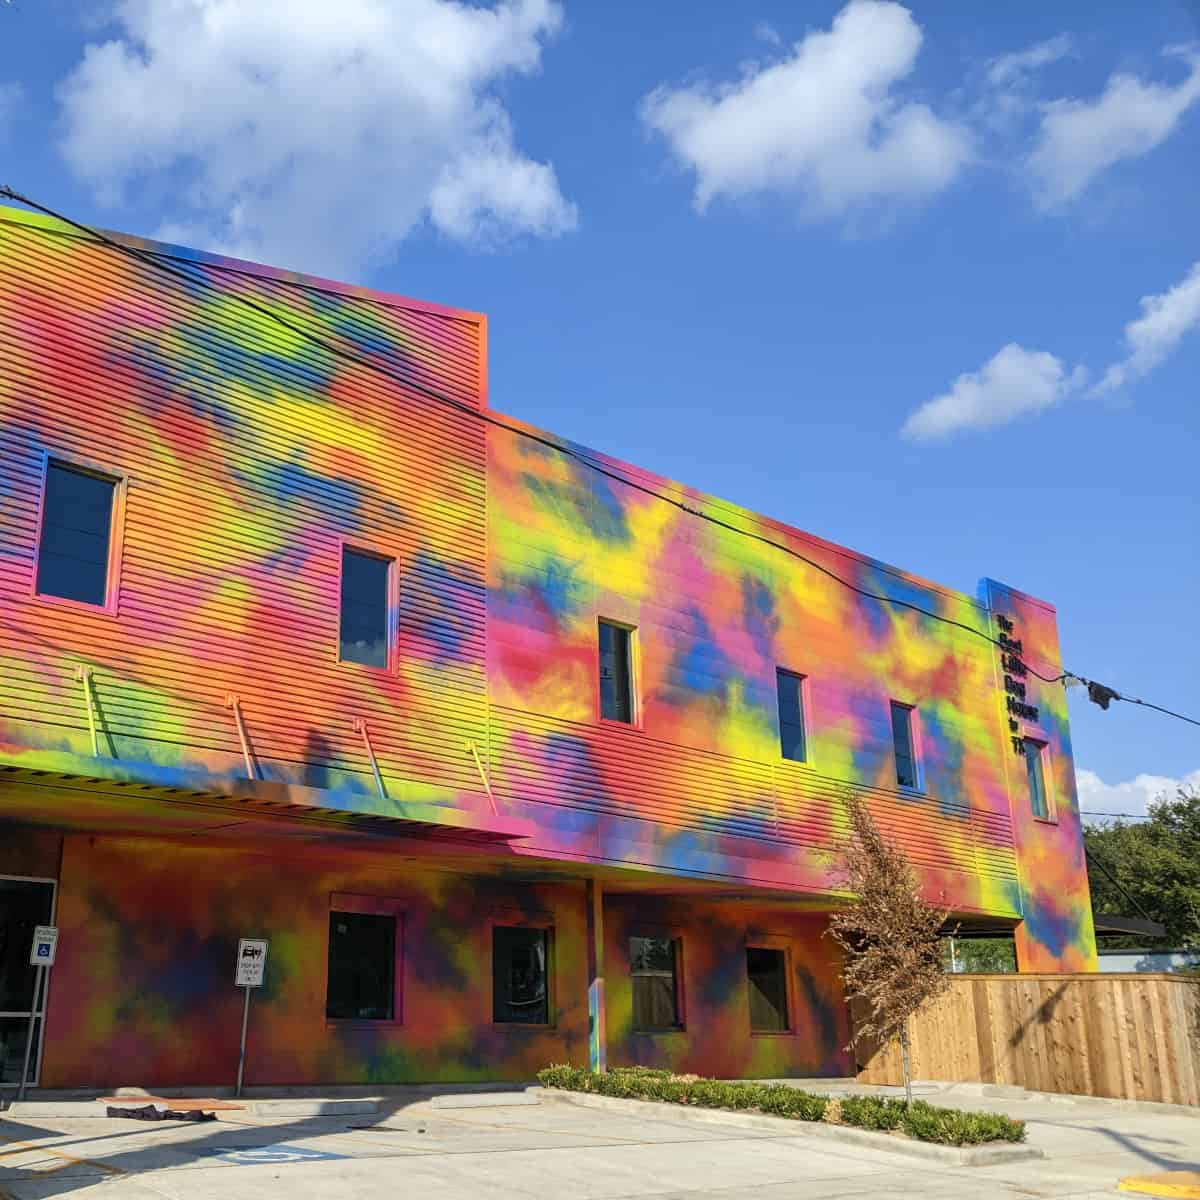 Best Little Dog House in Texas Tie Dyed Painted Building